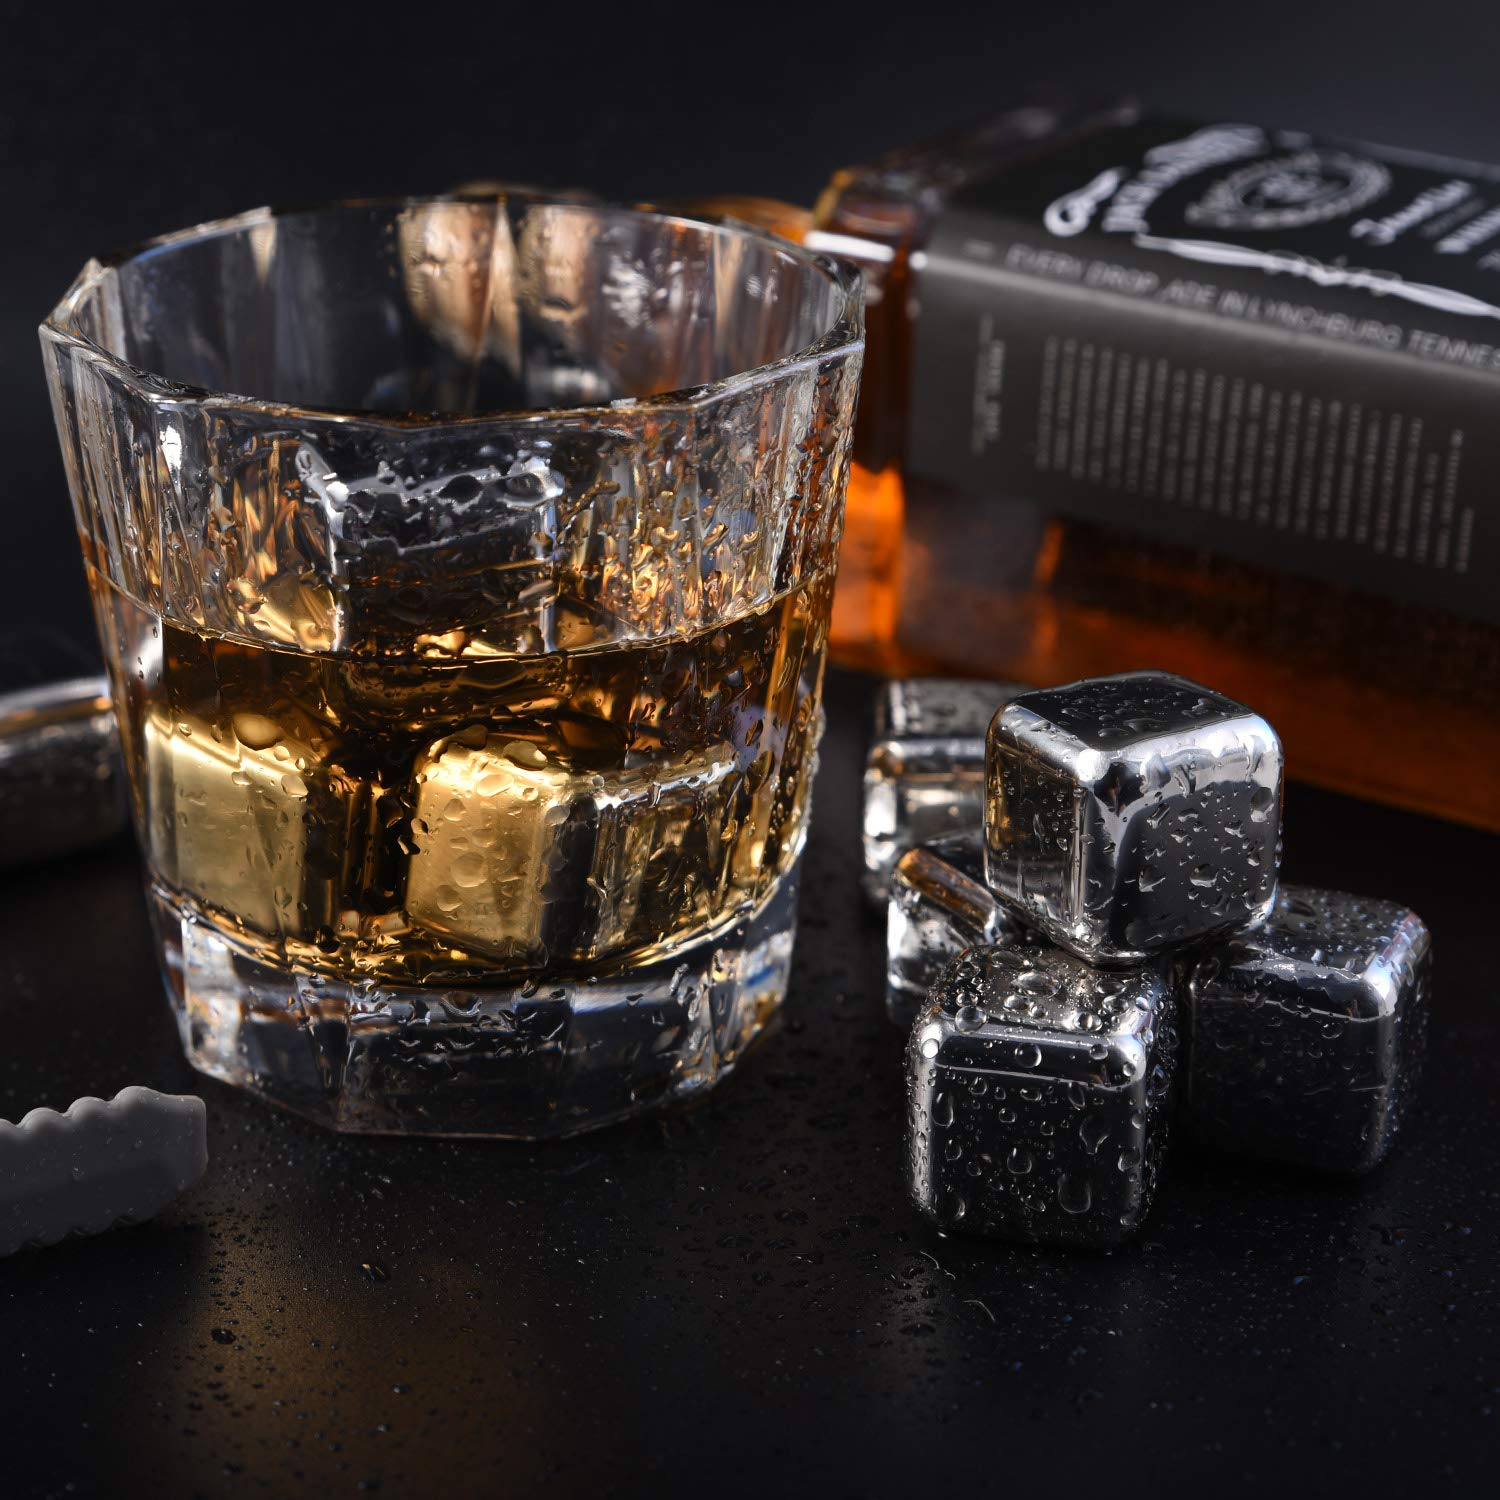 Mollyzillah Diamond-Shaped Stainless Steel Ice Cubes Whiskey Stones with 4PCS Cubes+ice tong a hyper cooler that can cool your drink in 90 seconds or less